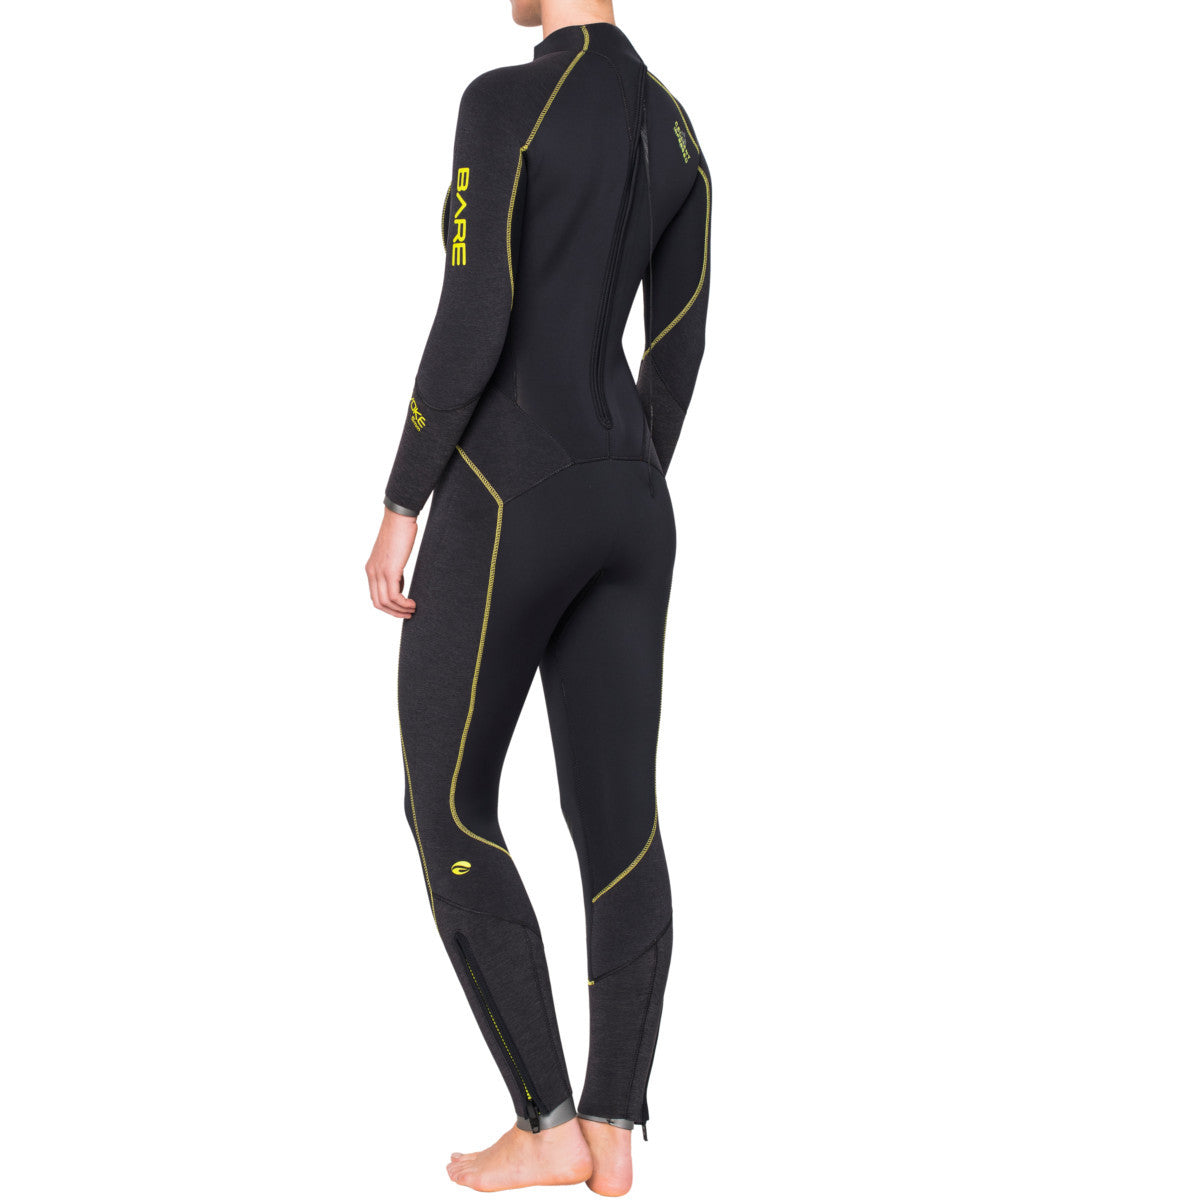 Bare Evoke 5mm Wetsuit: Womens - Oyster Diving Shop - 2